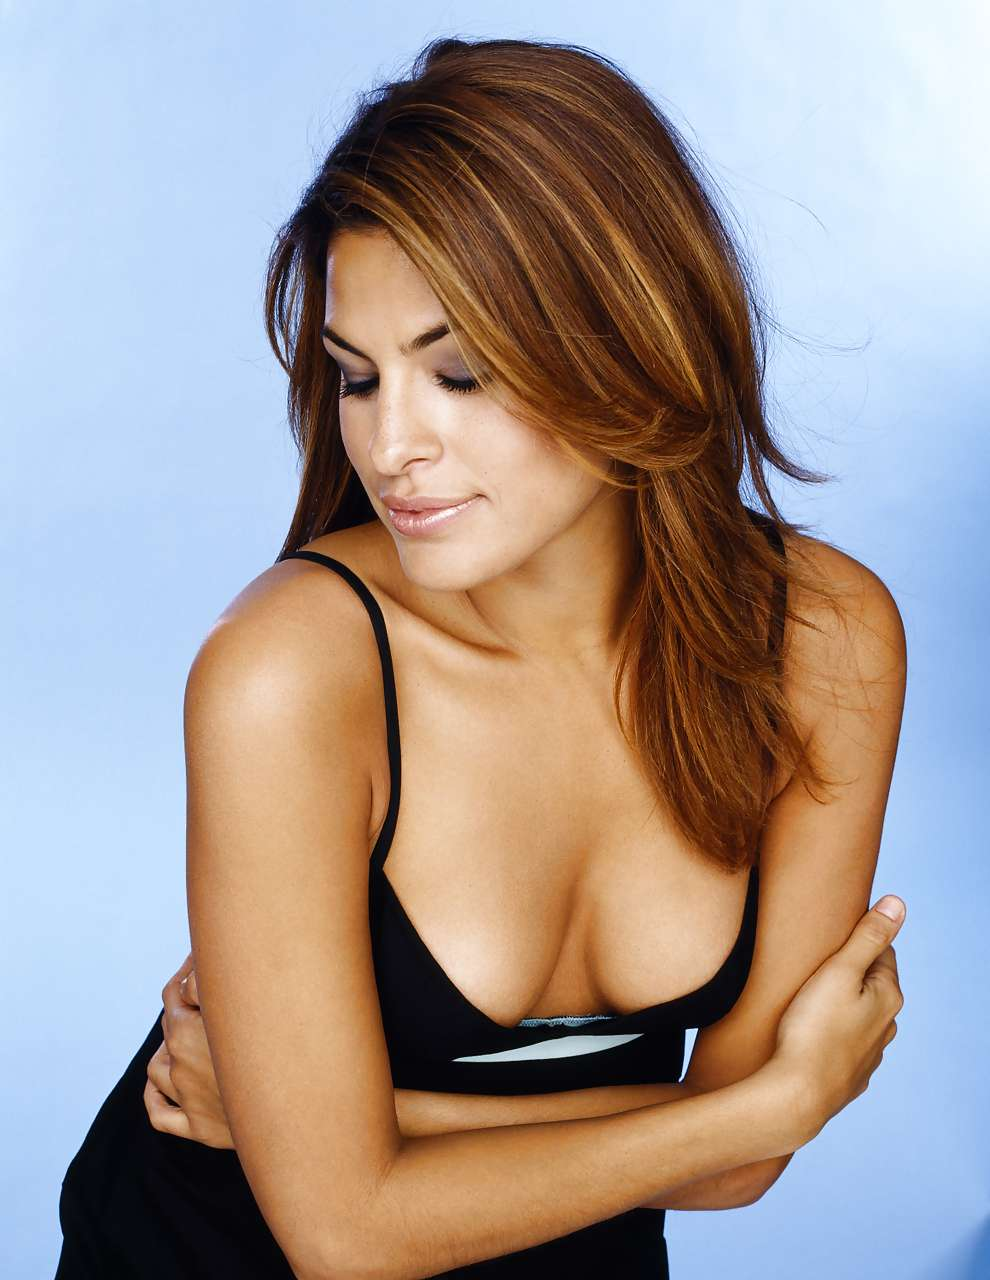 entplugged eva mendes biography latest hot nude and bikini gallery. Black Bedroom Furniture Sets. Home Design Ideas